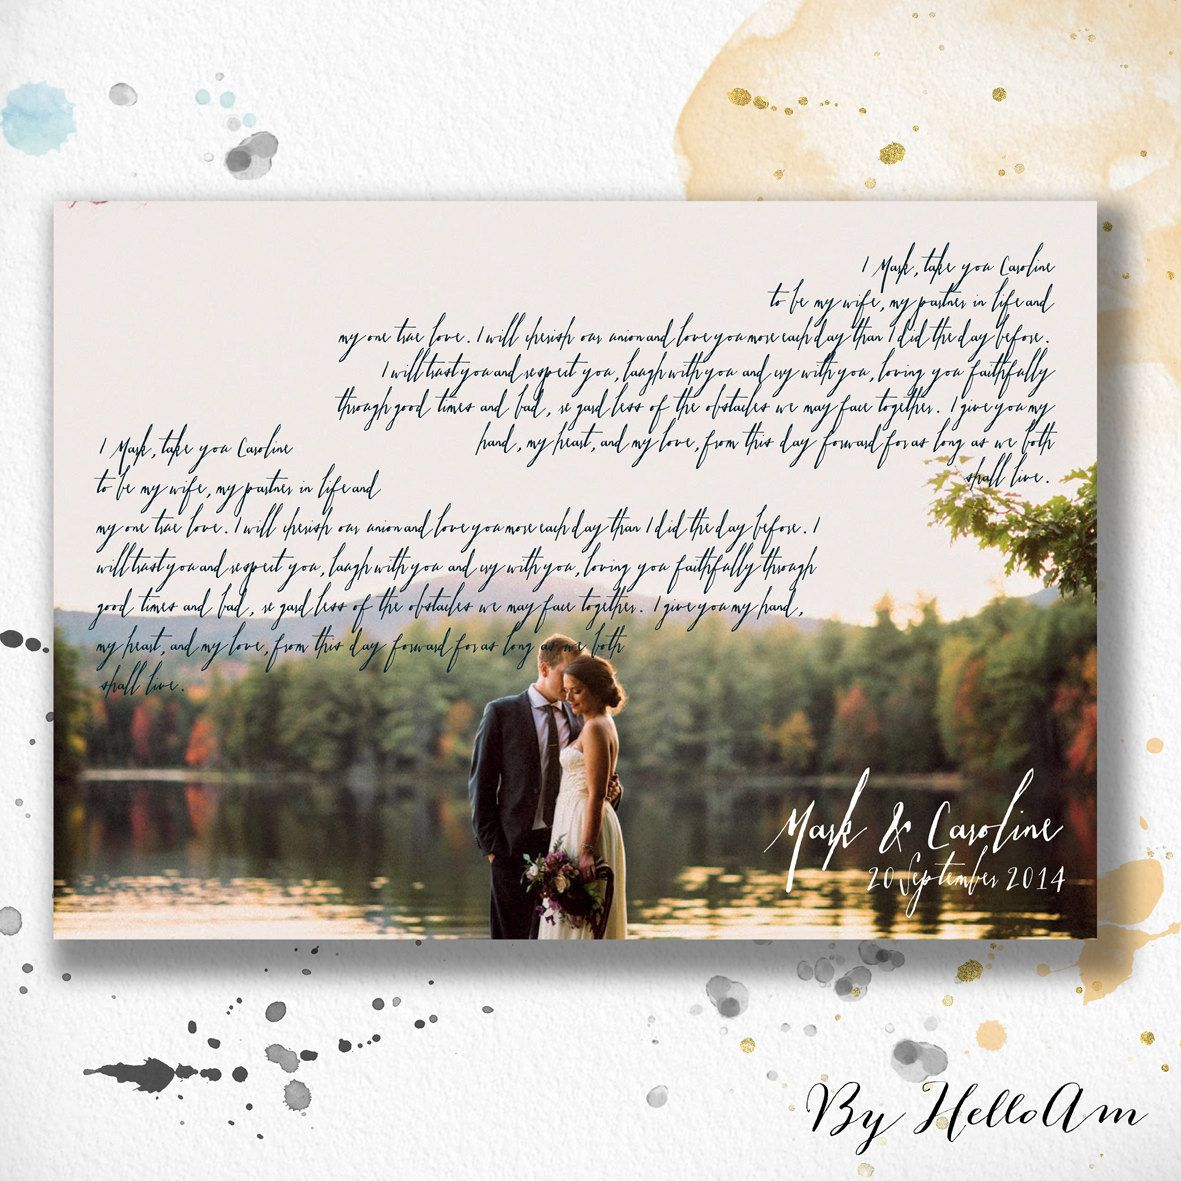 1st Anniversary Gift A Personalized Wedding Vows With Calligraphy Art On Your Photo This Lovely Wall Hanging Can Be